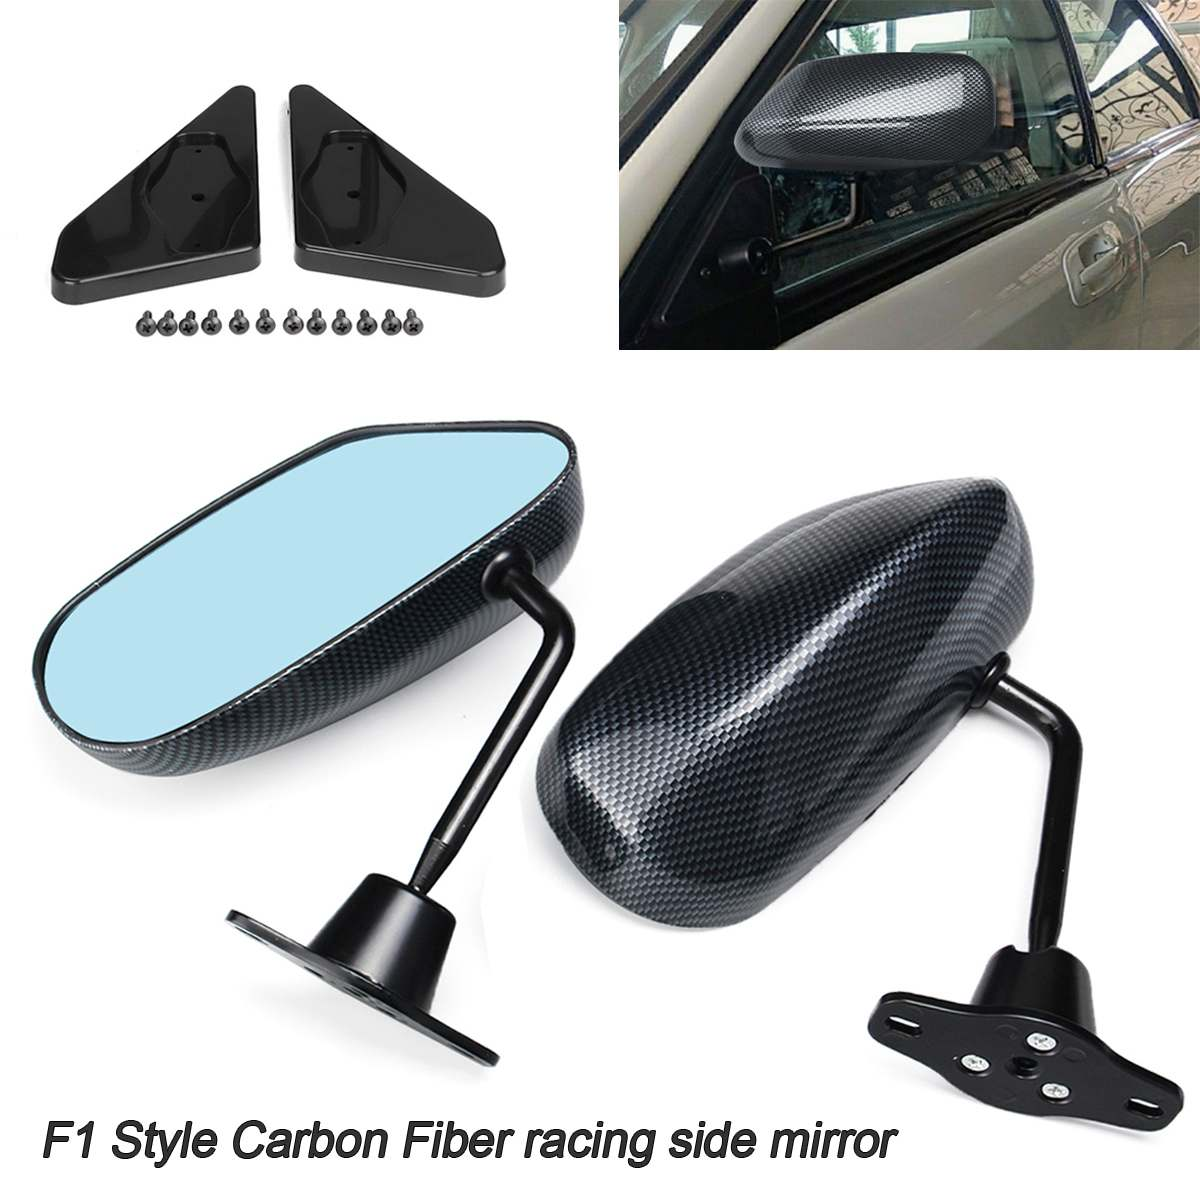 Universal A Pair Car F1 Carbon Fiber Look Blue Rear View Side Mirror Racing Side Retro